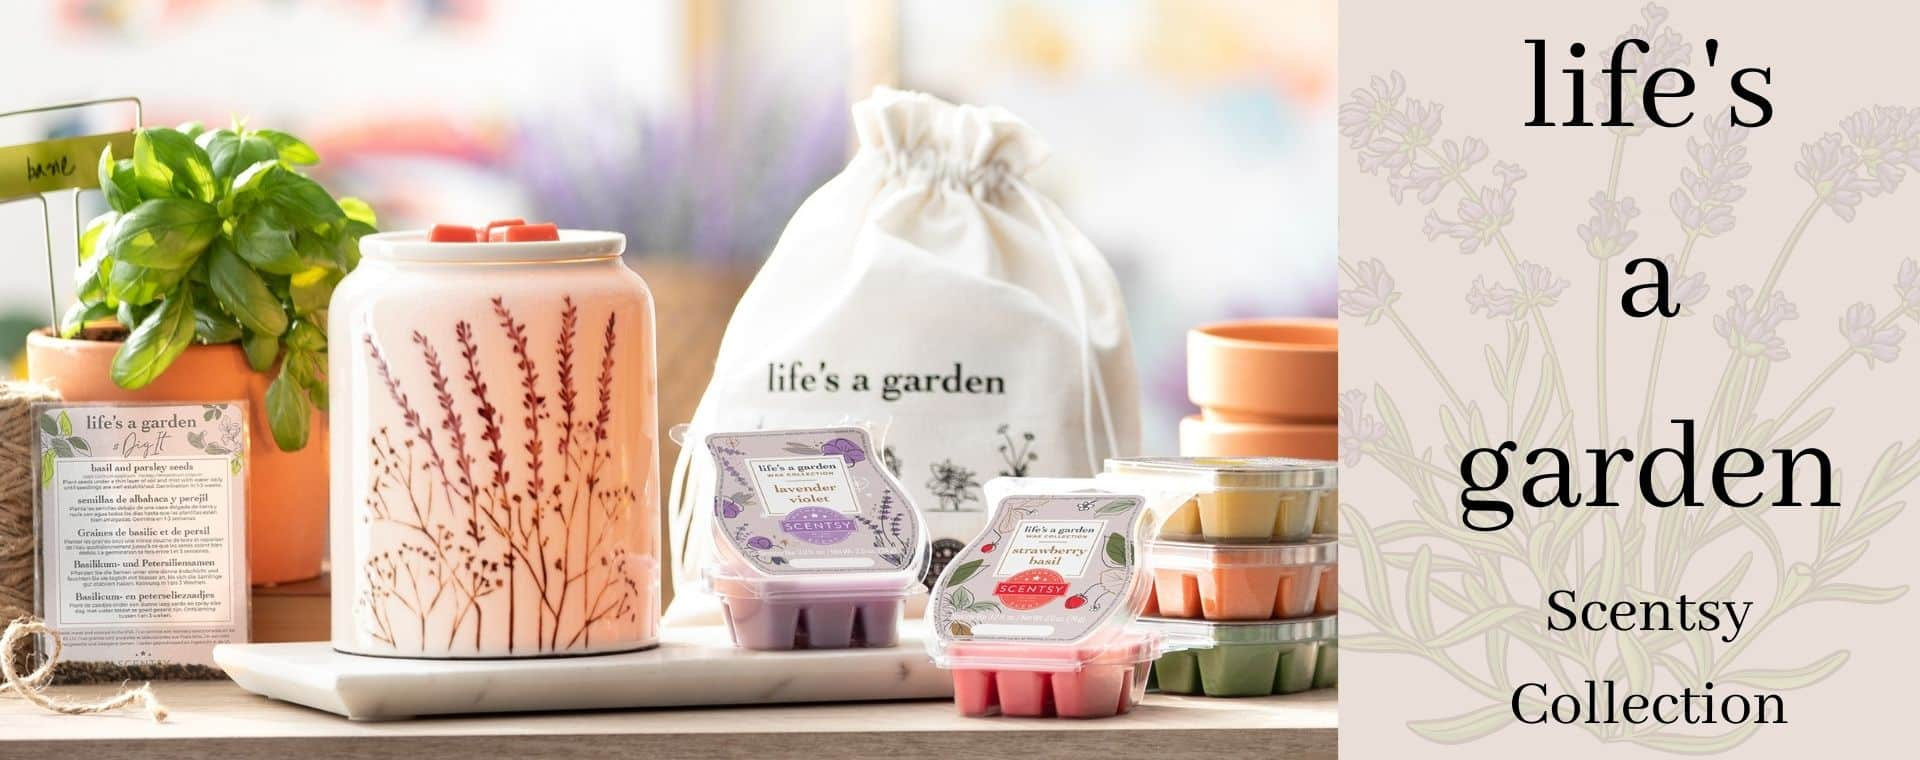 LIFE'S A GARDEN SCENTSY COLLECTION 2